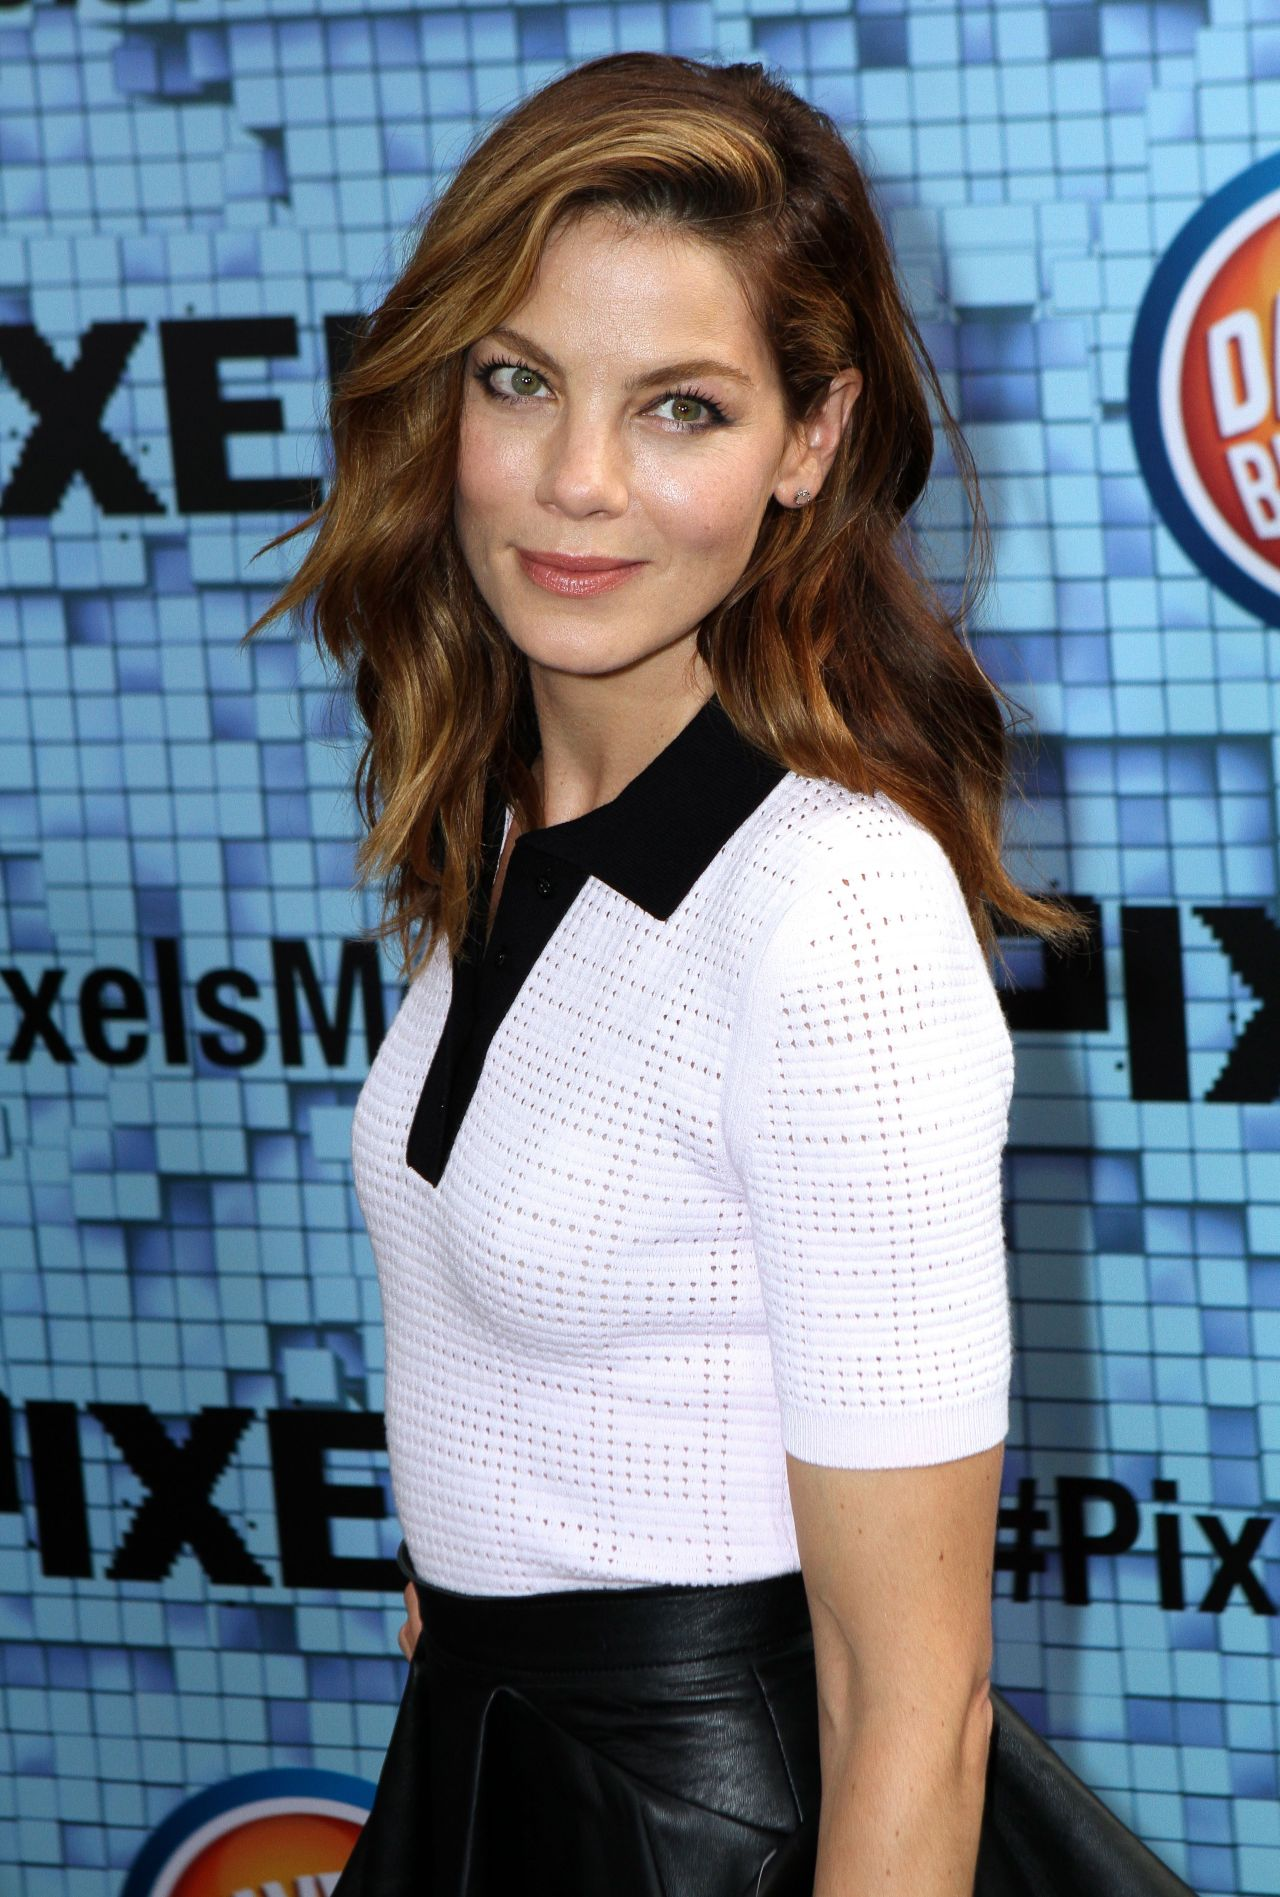 Michelle Monaghan Pixels Premiere In New York City